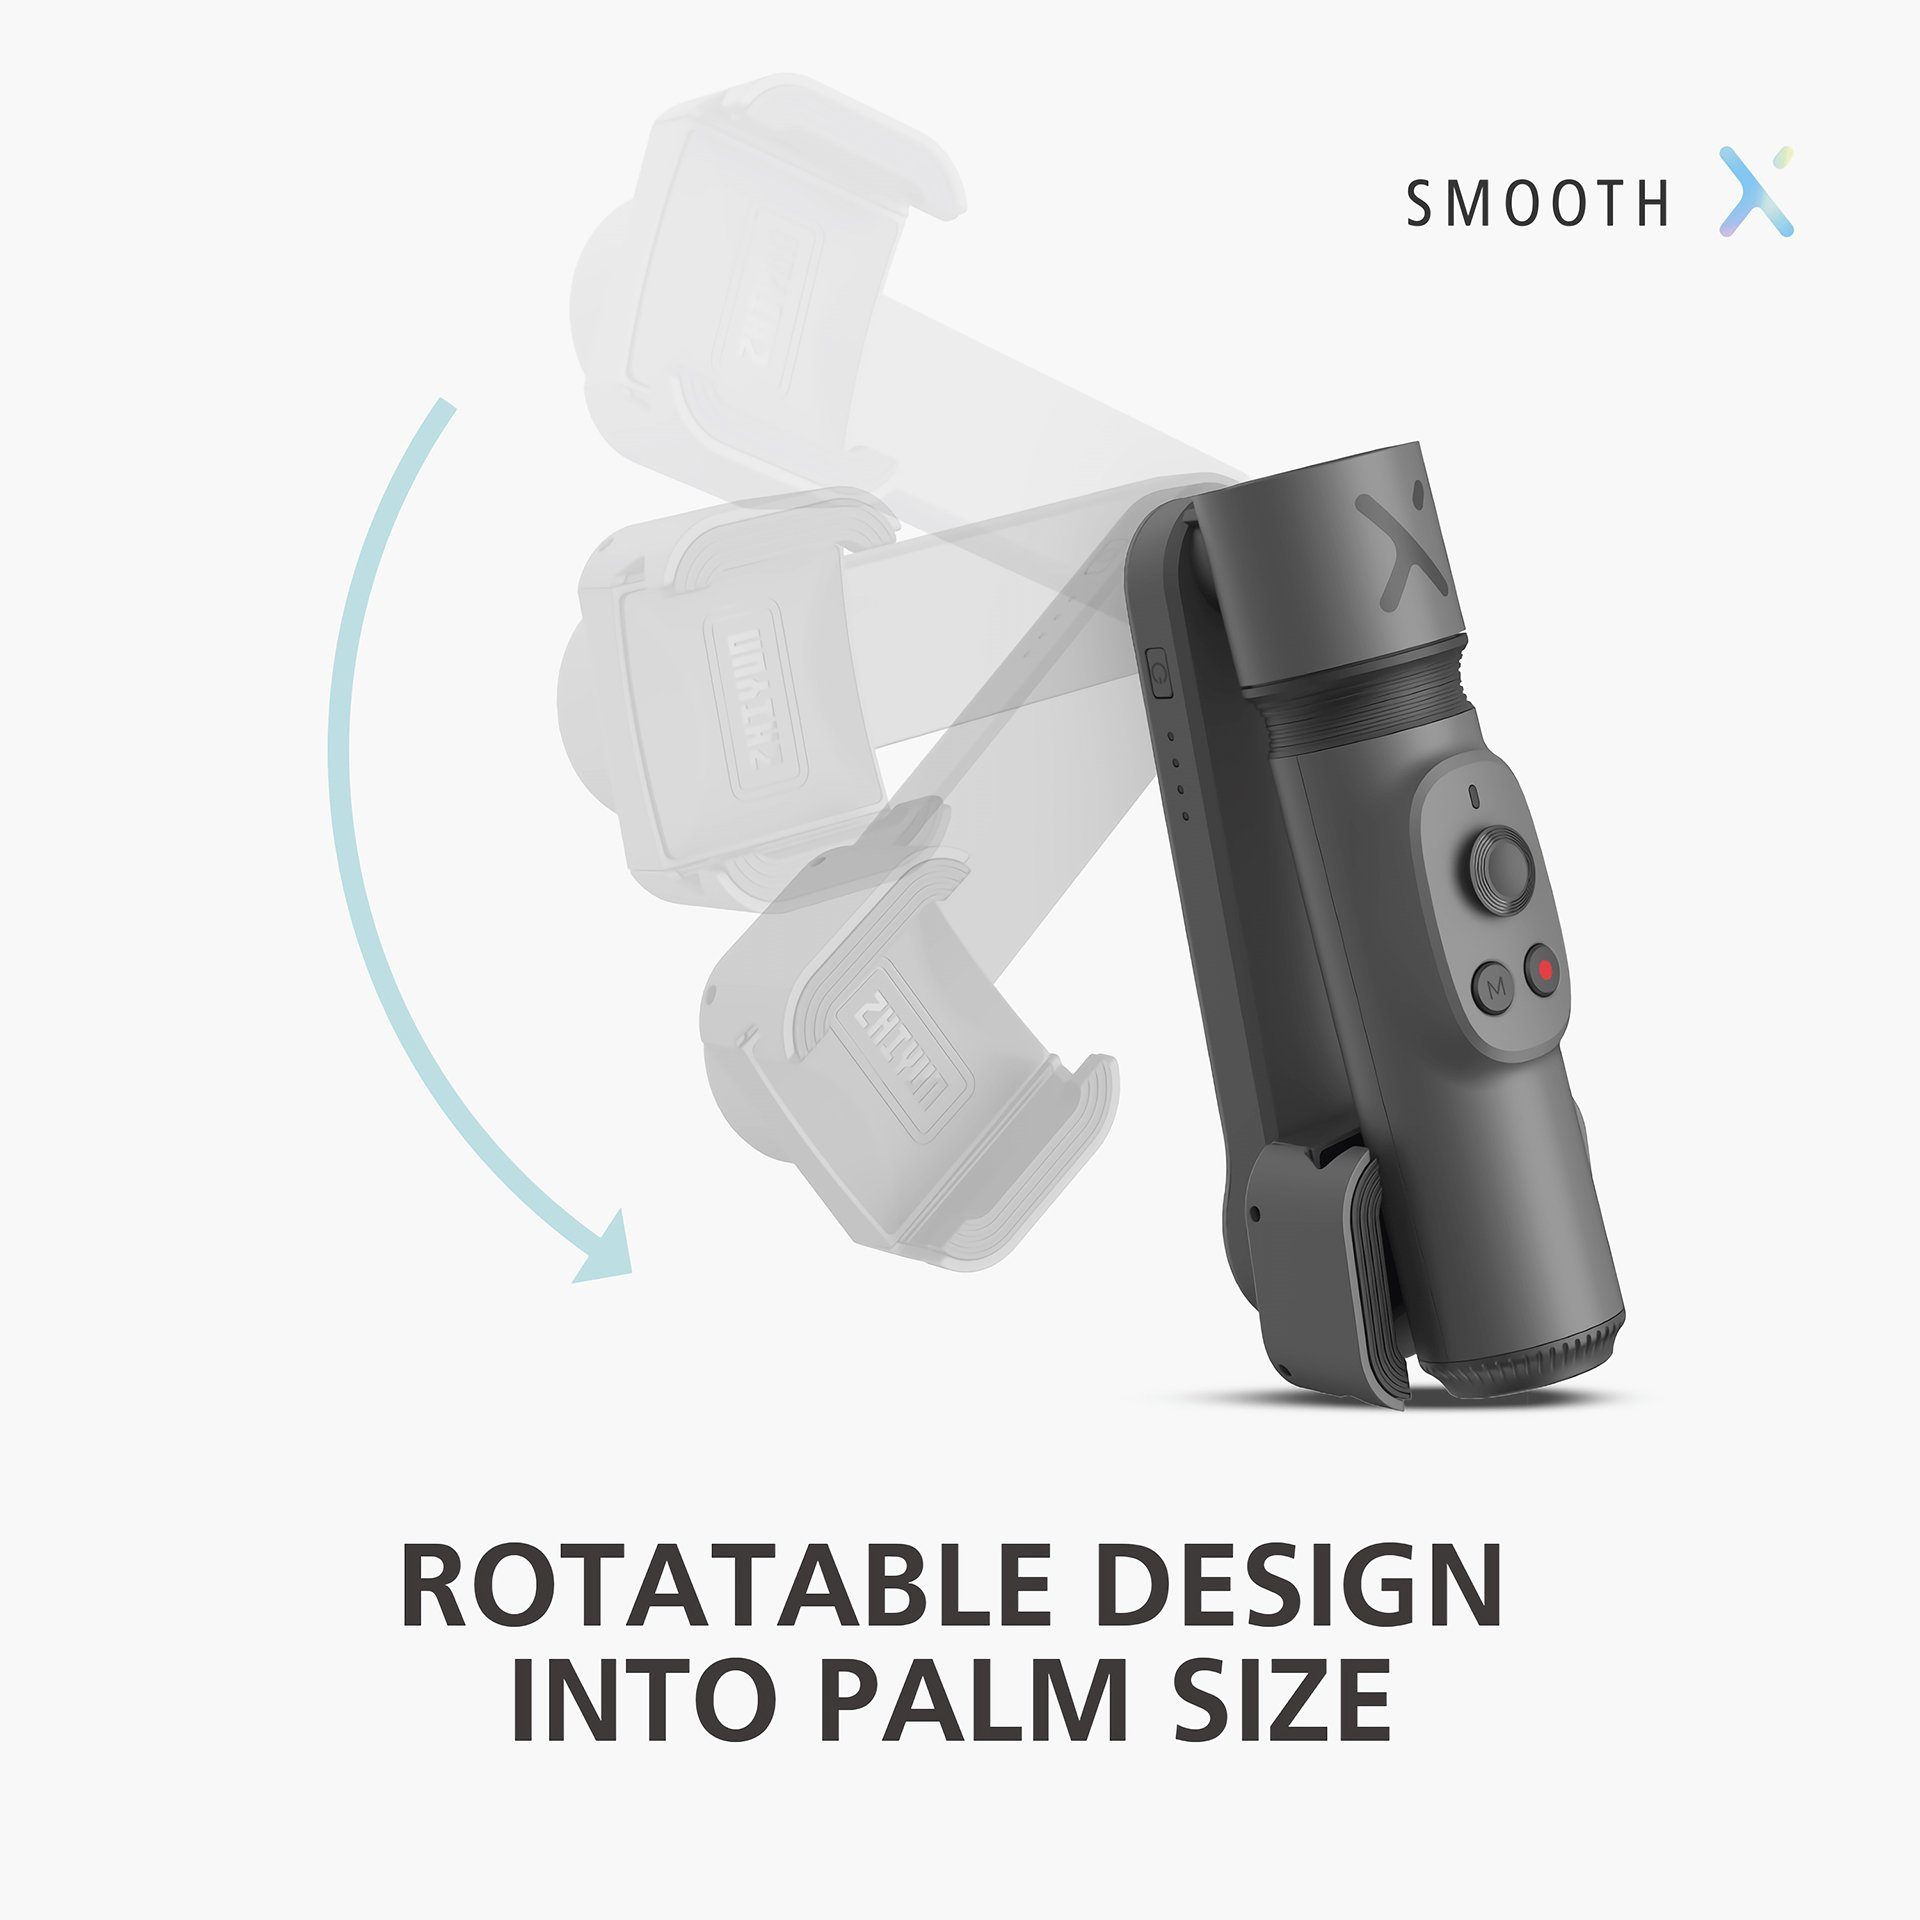 Rotatable Design that fits into palm size